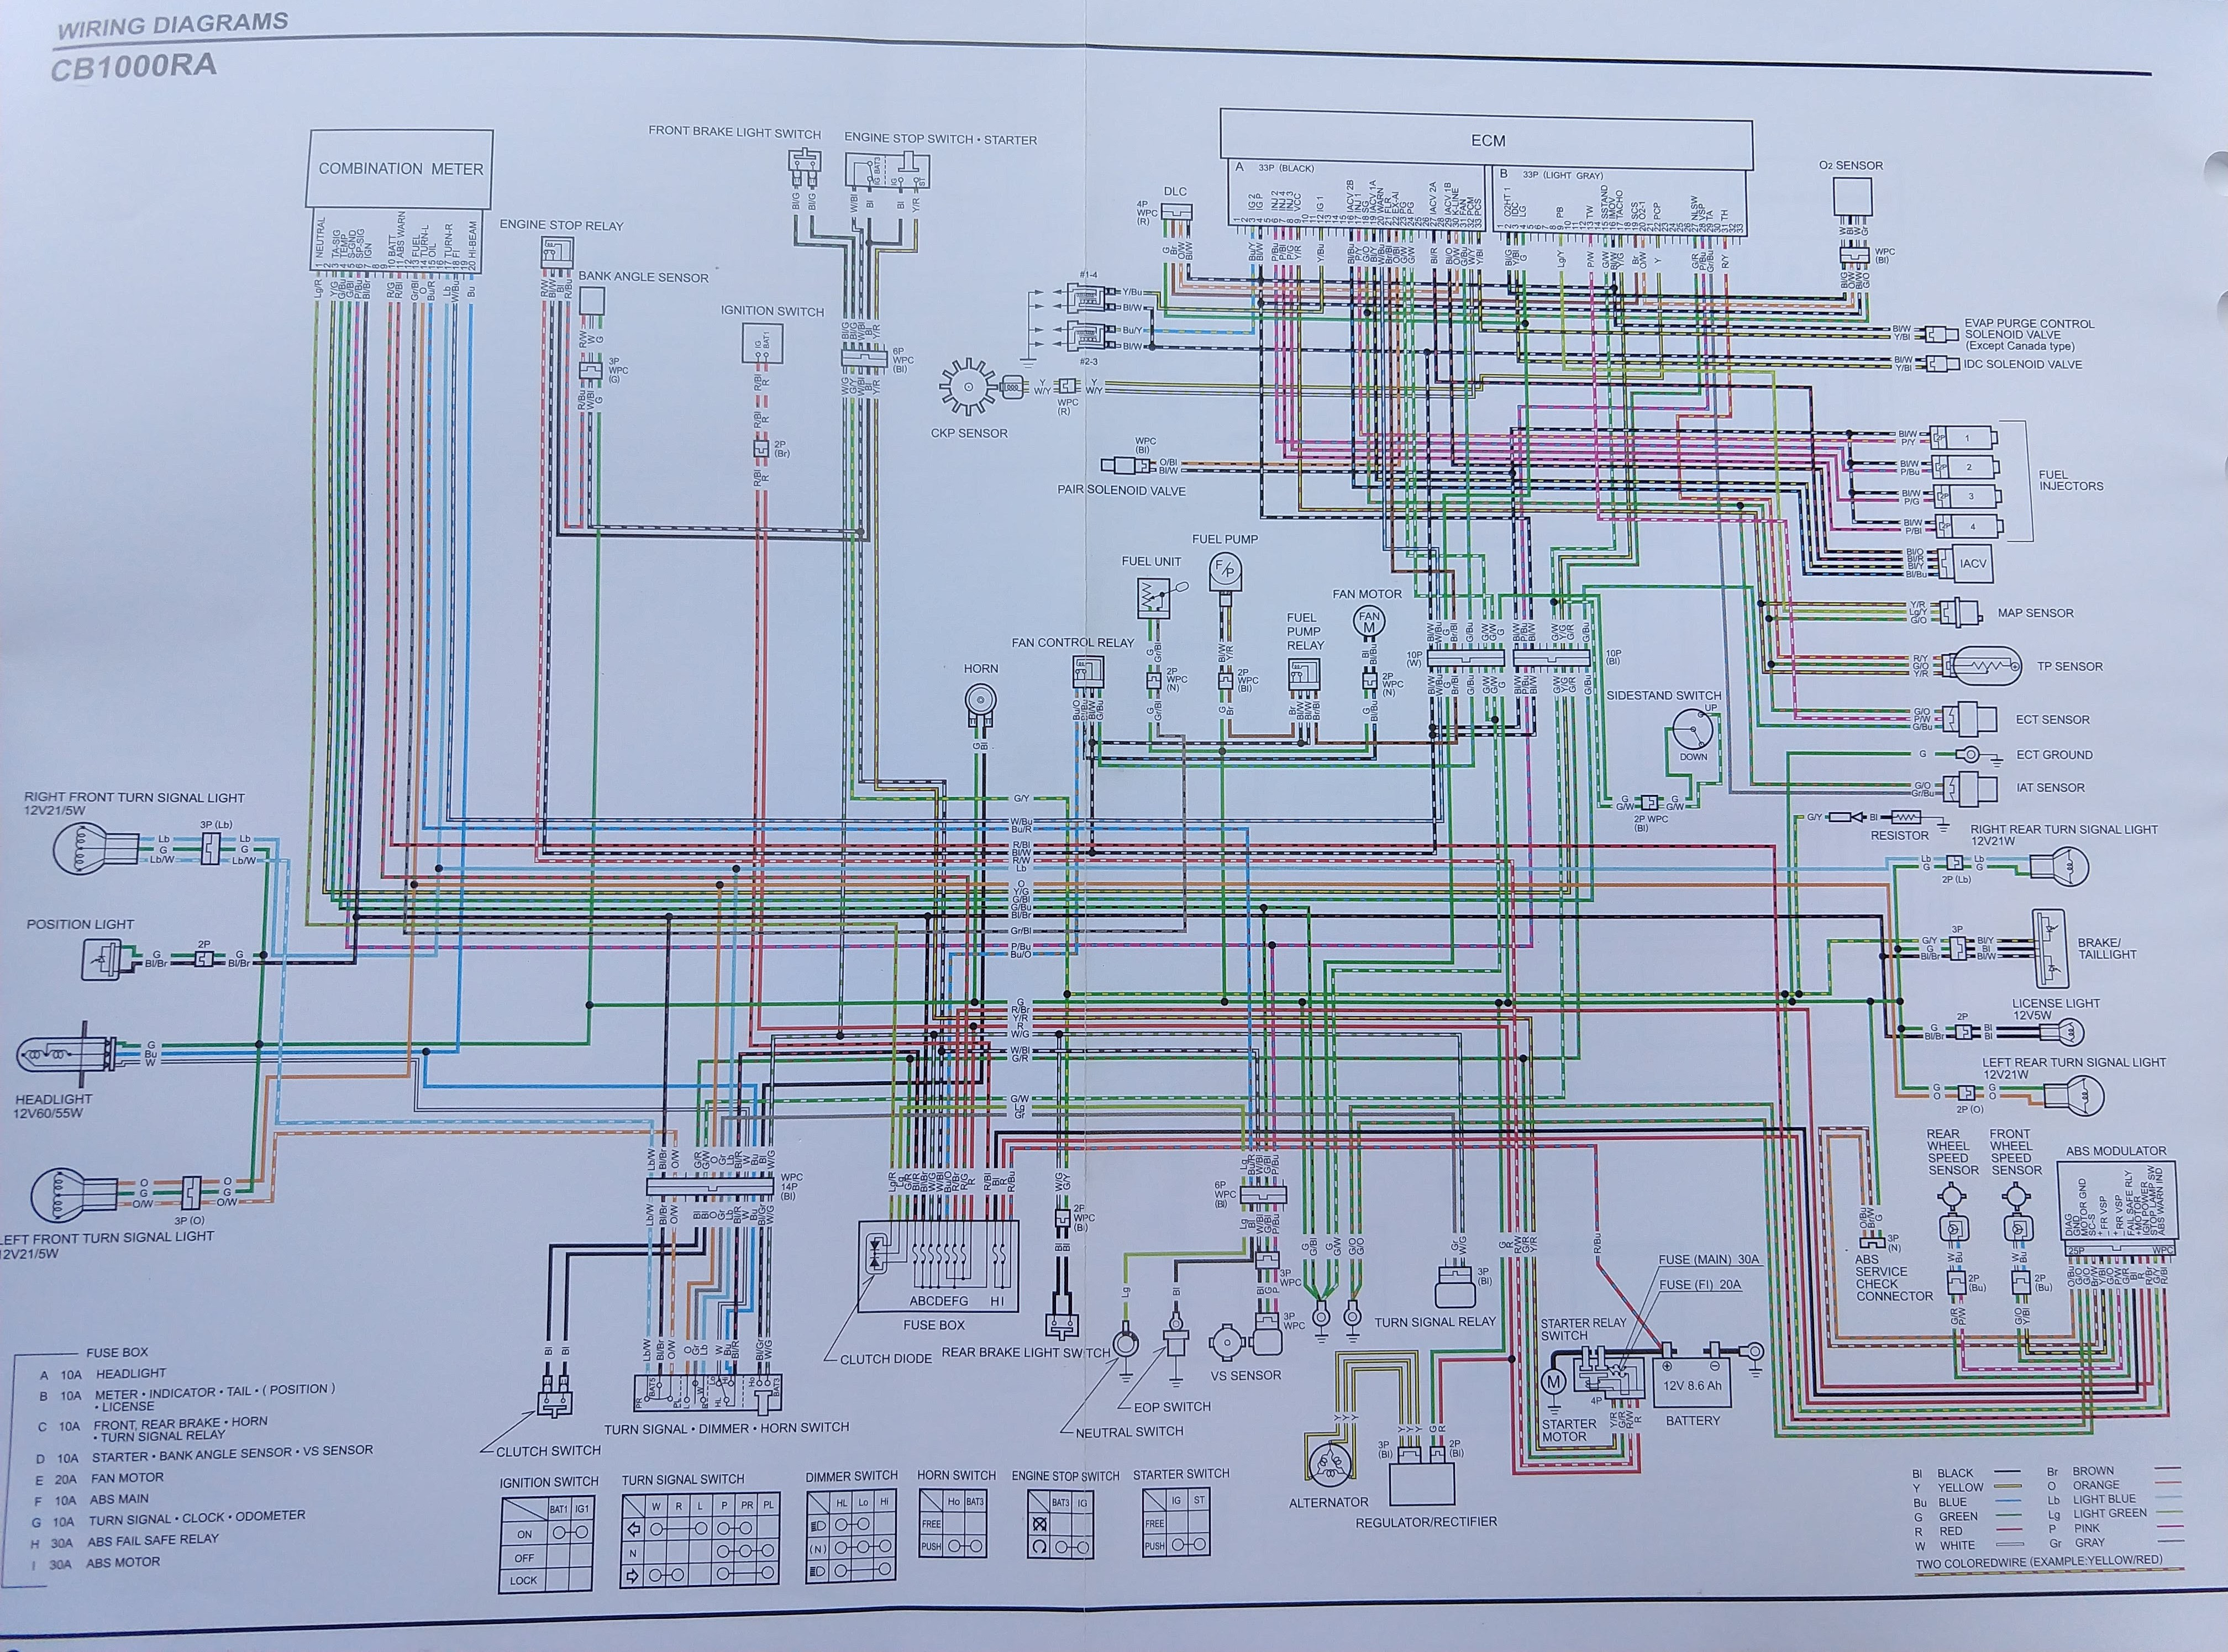 CB1000R North American specific Wiring Diagram on